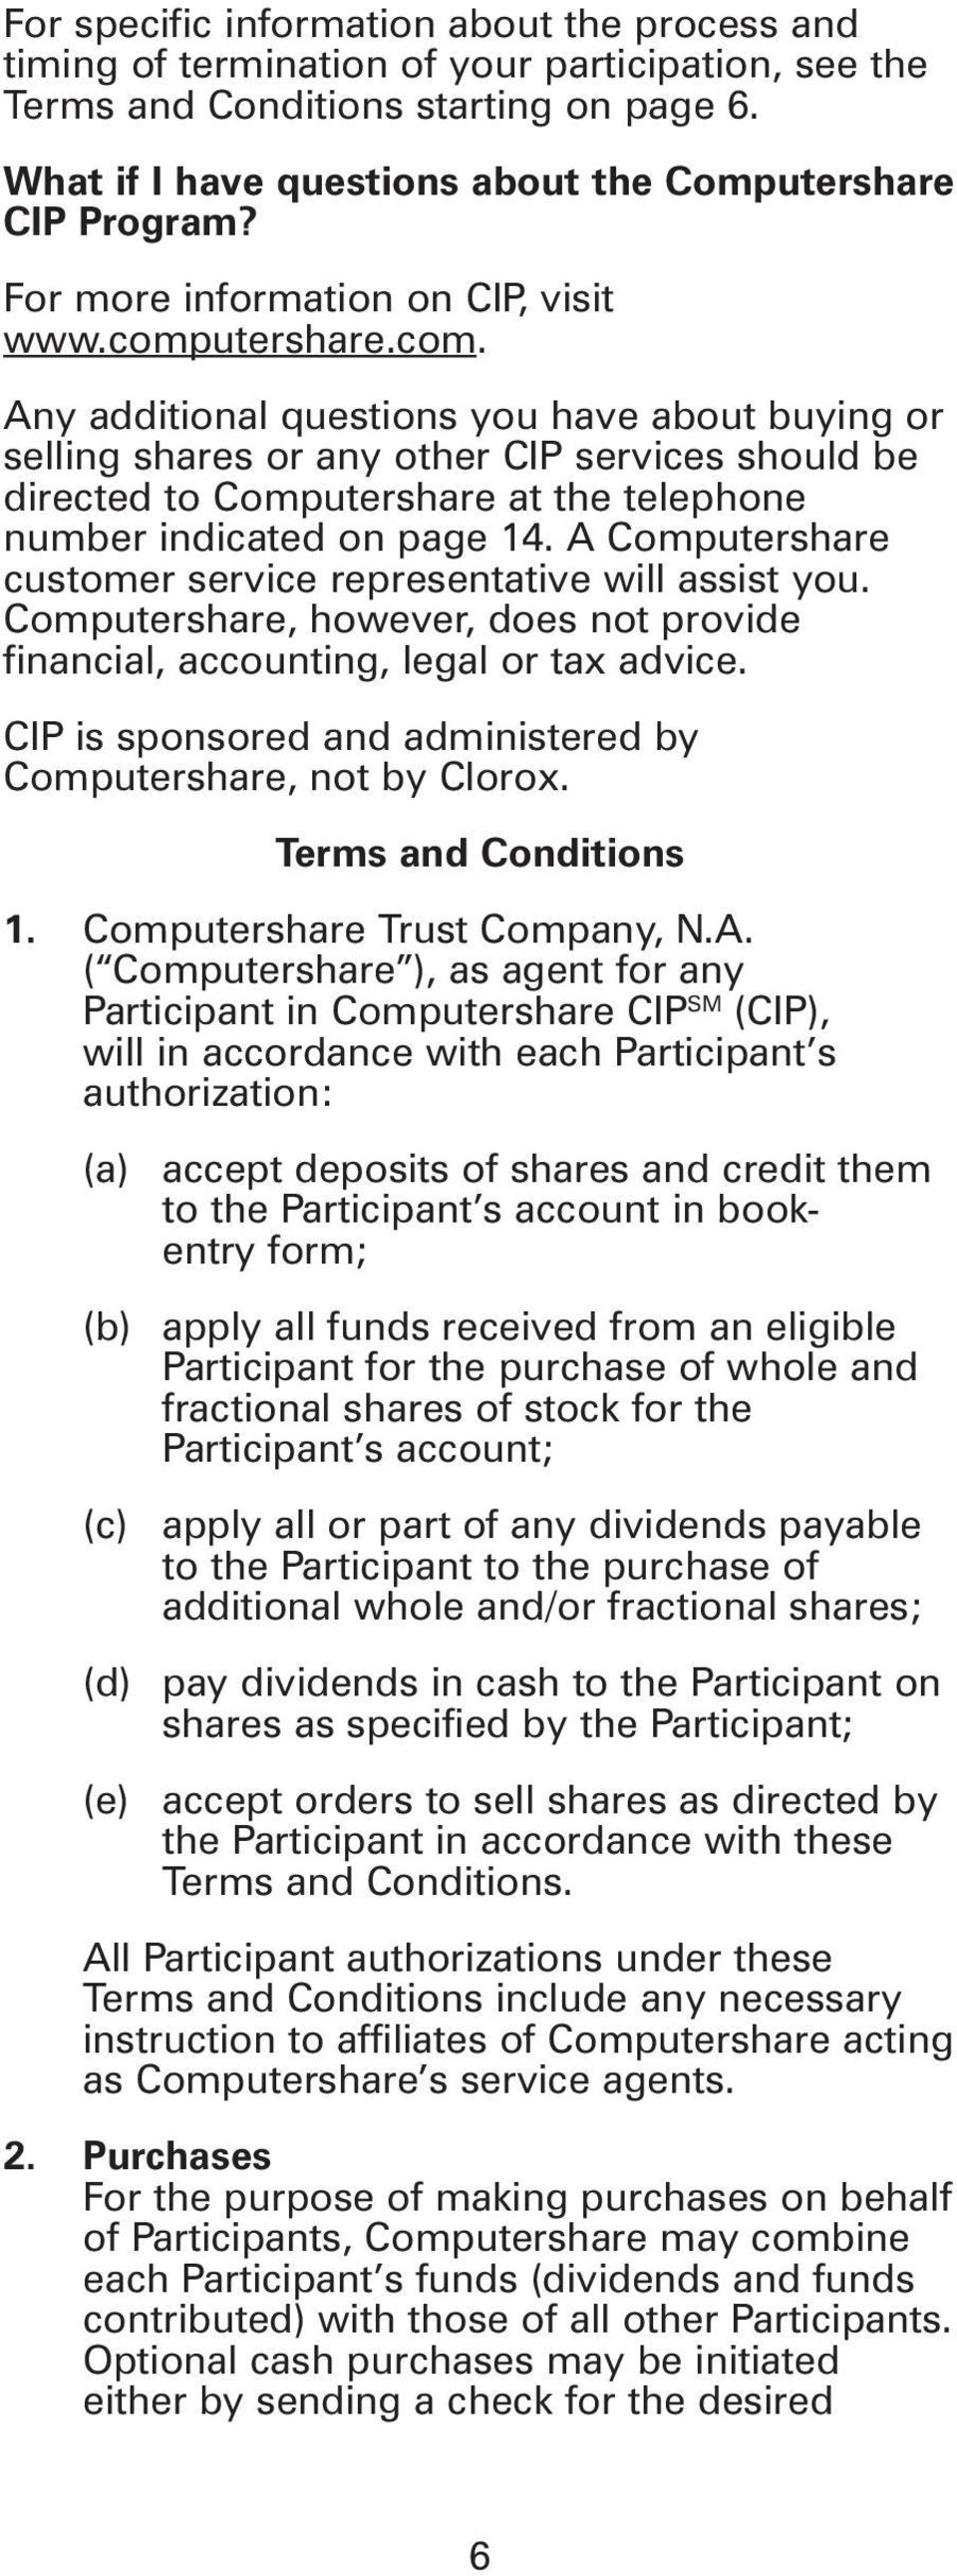 utershare.com. Any additional questions you have about buying or selling shares or any other CIP services should be directed to Computershare at the telephone number indicated on page 14.